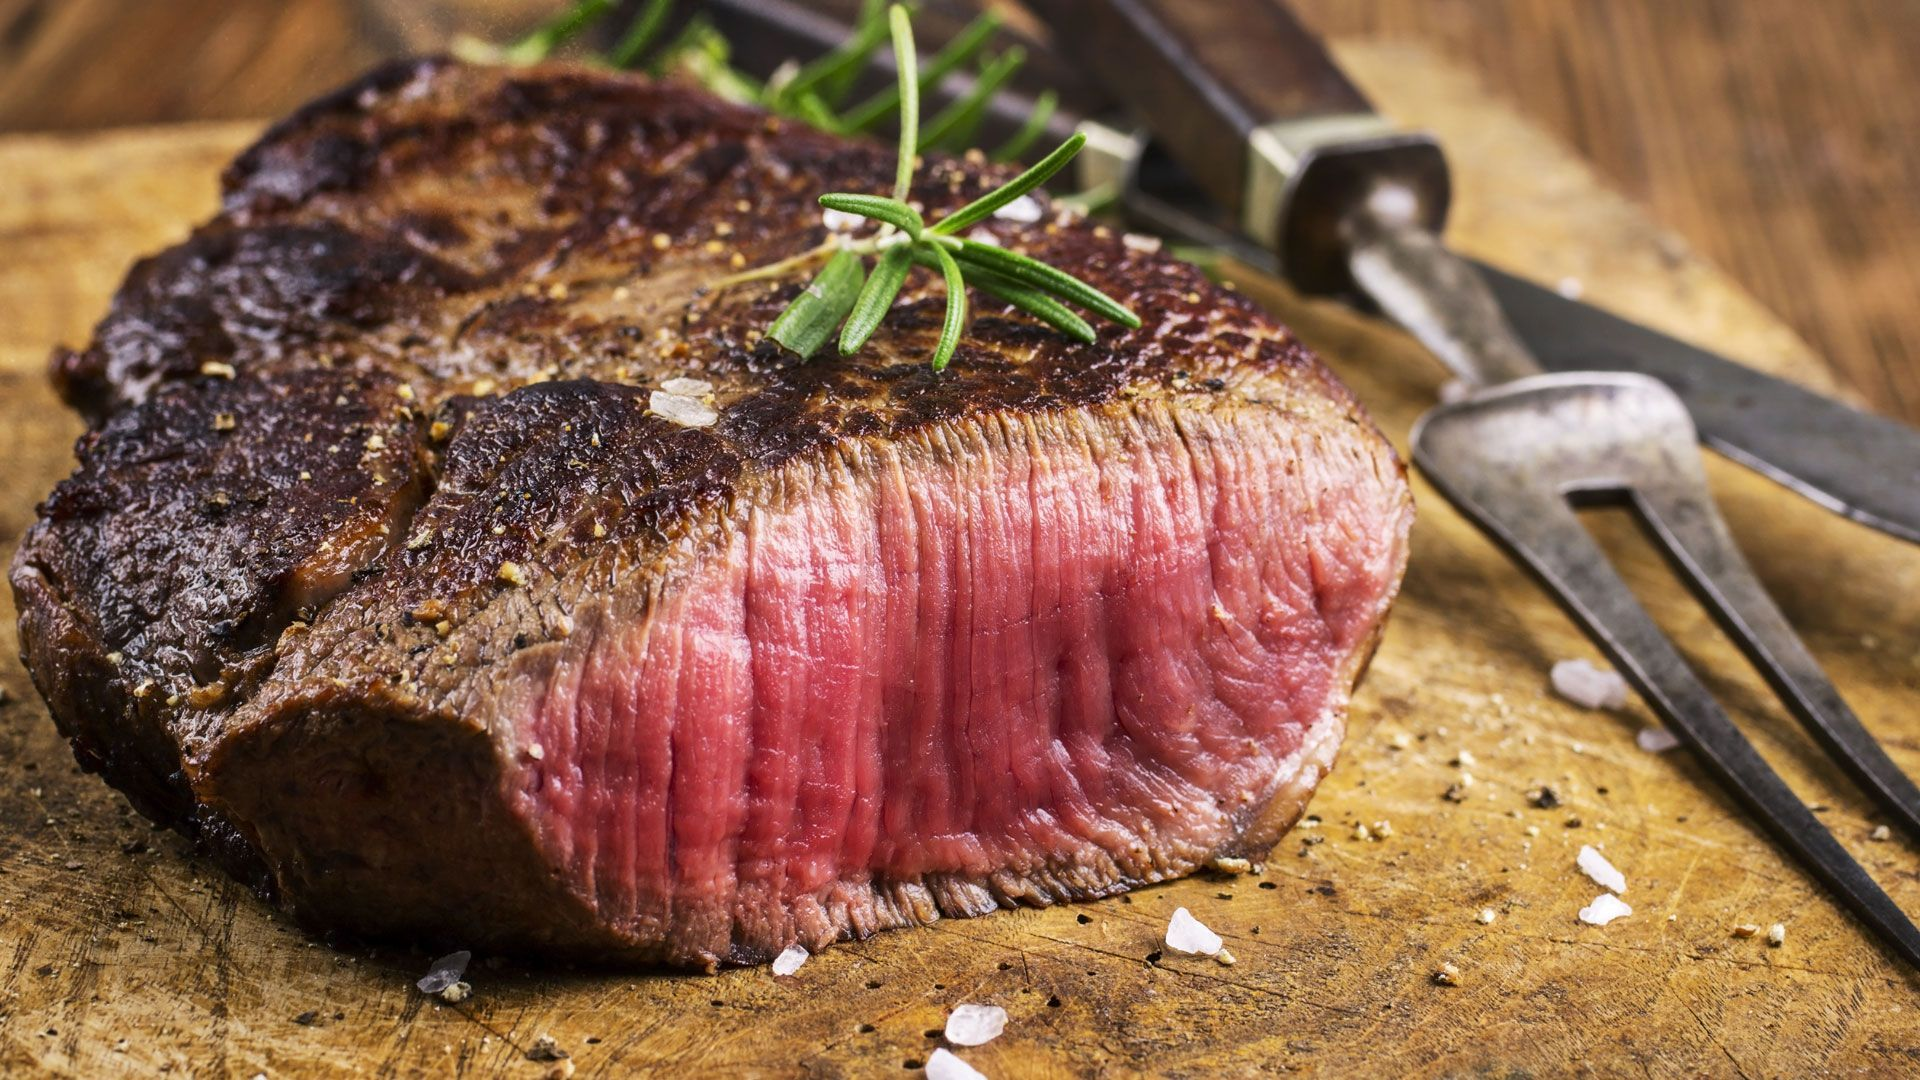 Is Saturated Fat Bad? No. But It's Not a Health Food Either.